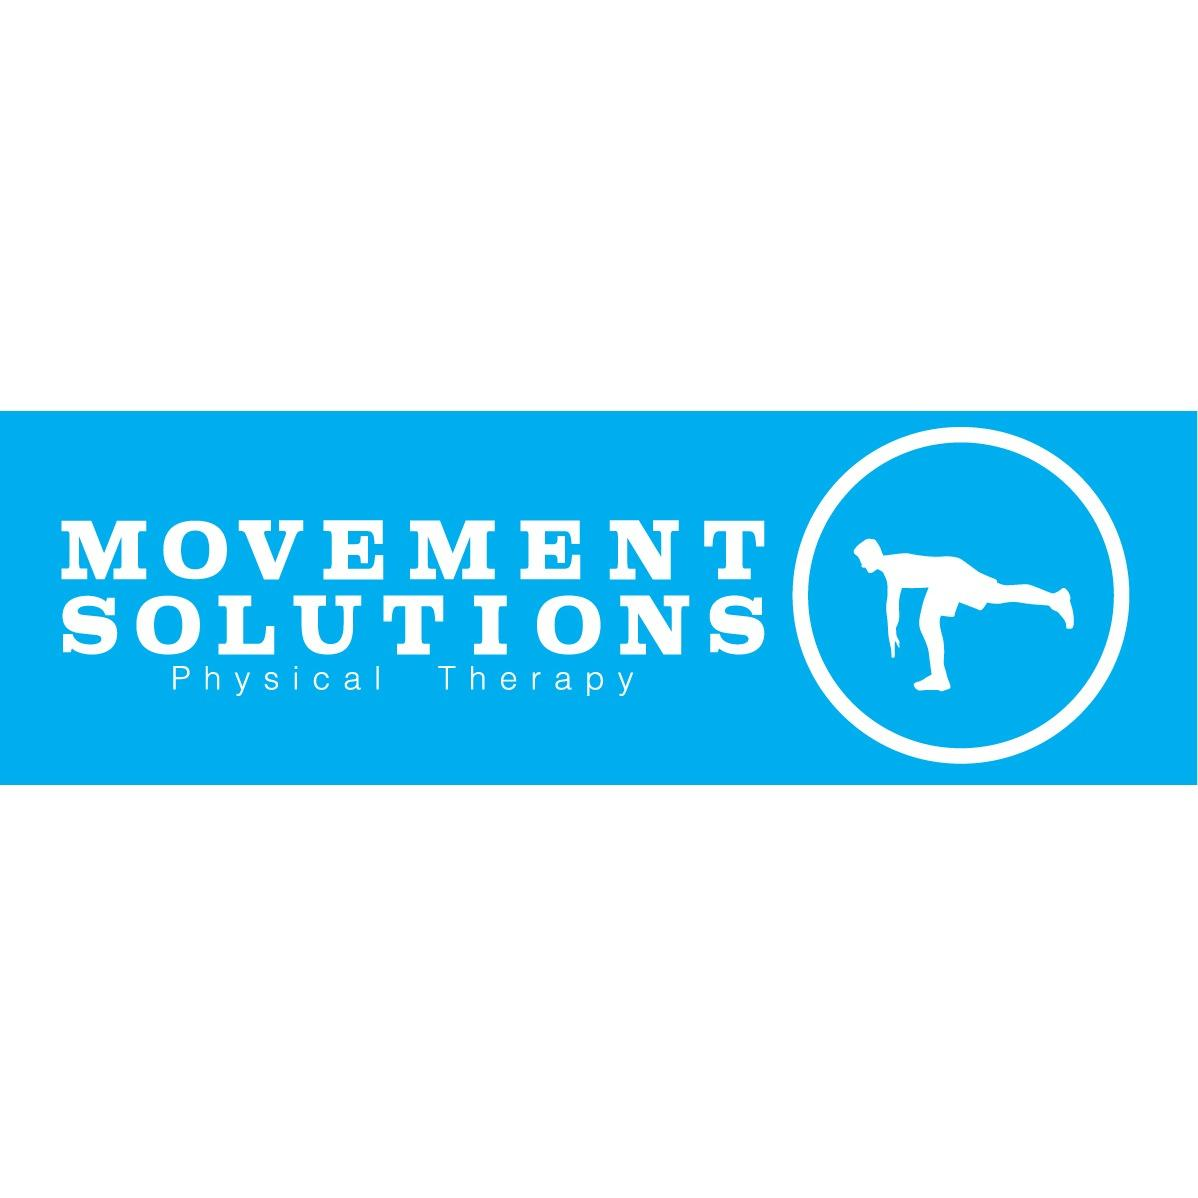 Movement Solutions Physical Therapy